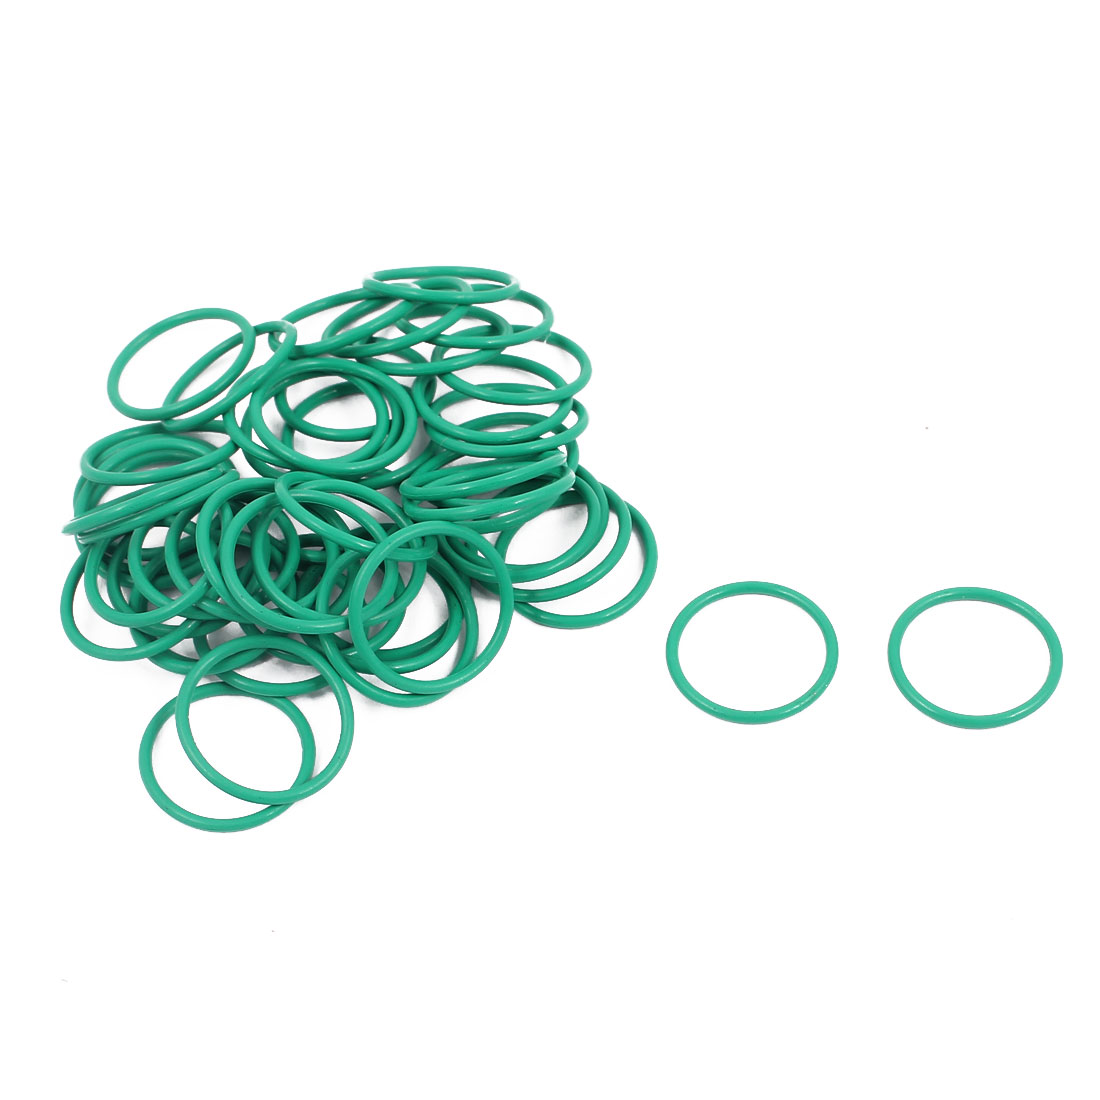 50Pcs 13mm x 1mm FKM O-rings Heat Resistant Sealing Ring Grommets Green